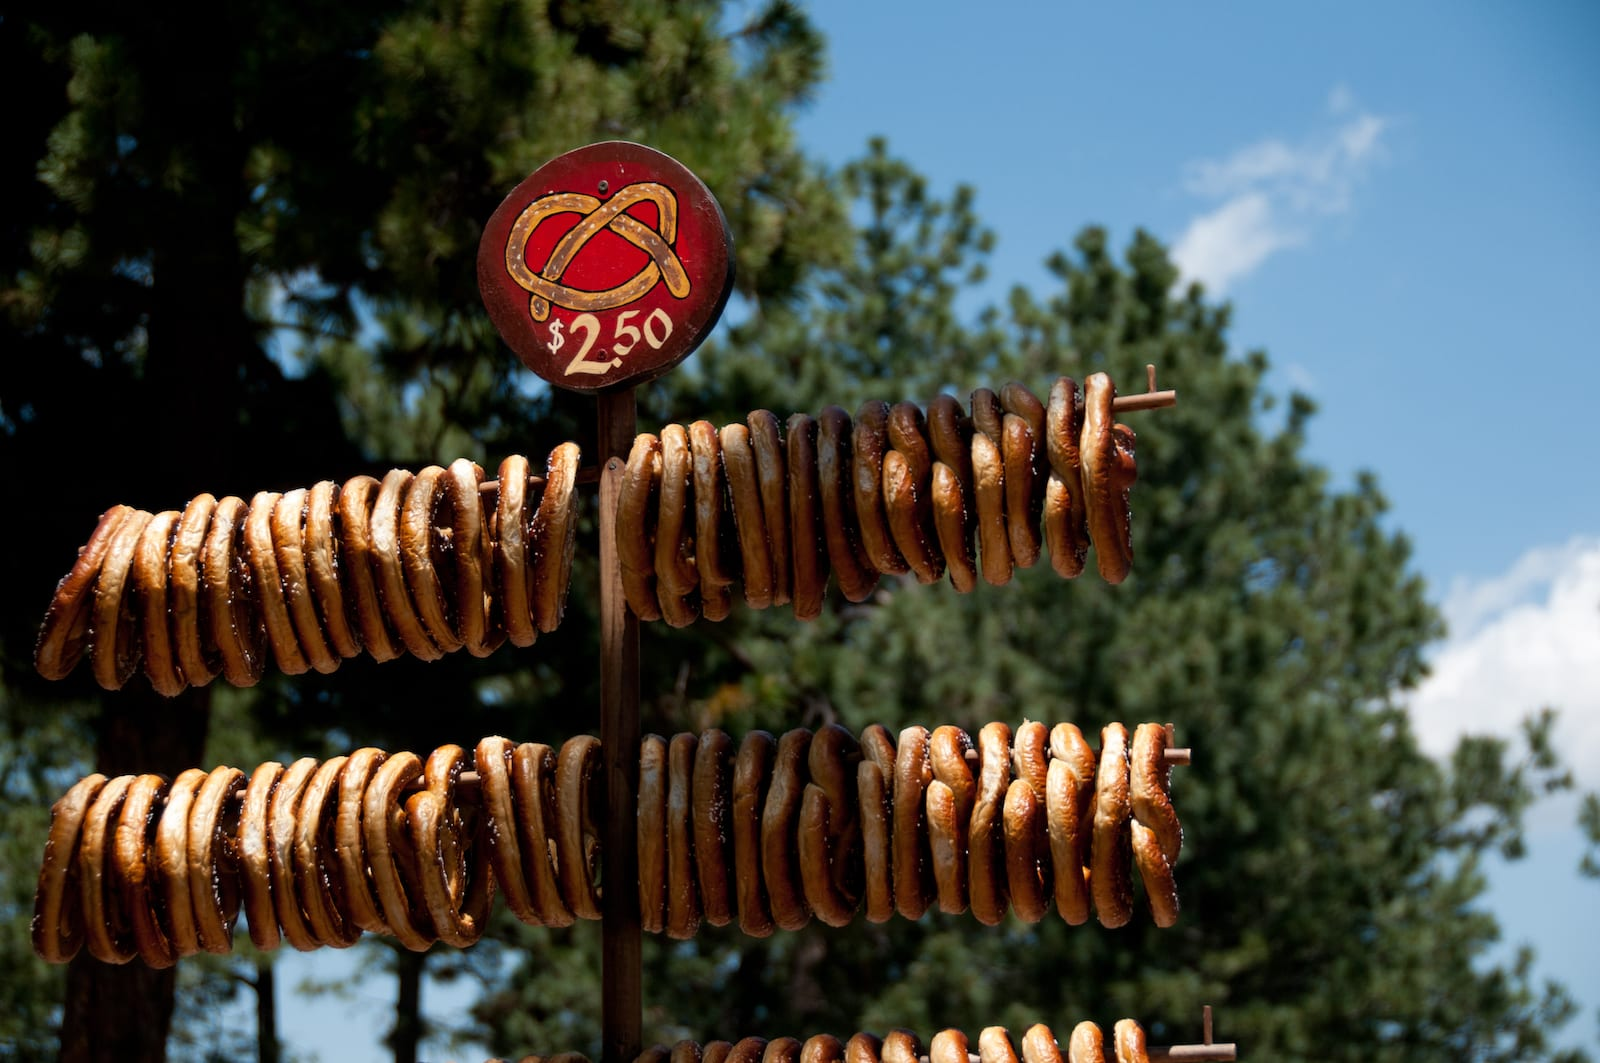 Colorado Renaissance Festival Soft Pretzels for Sale